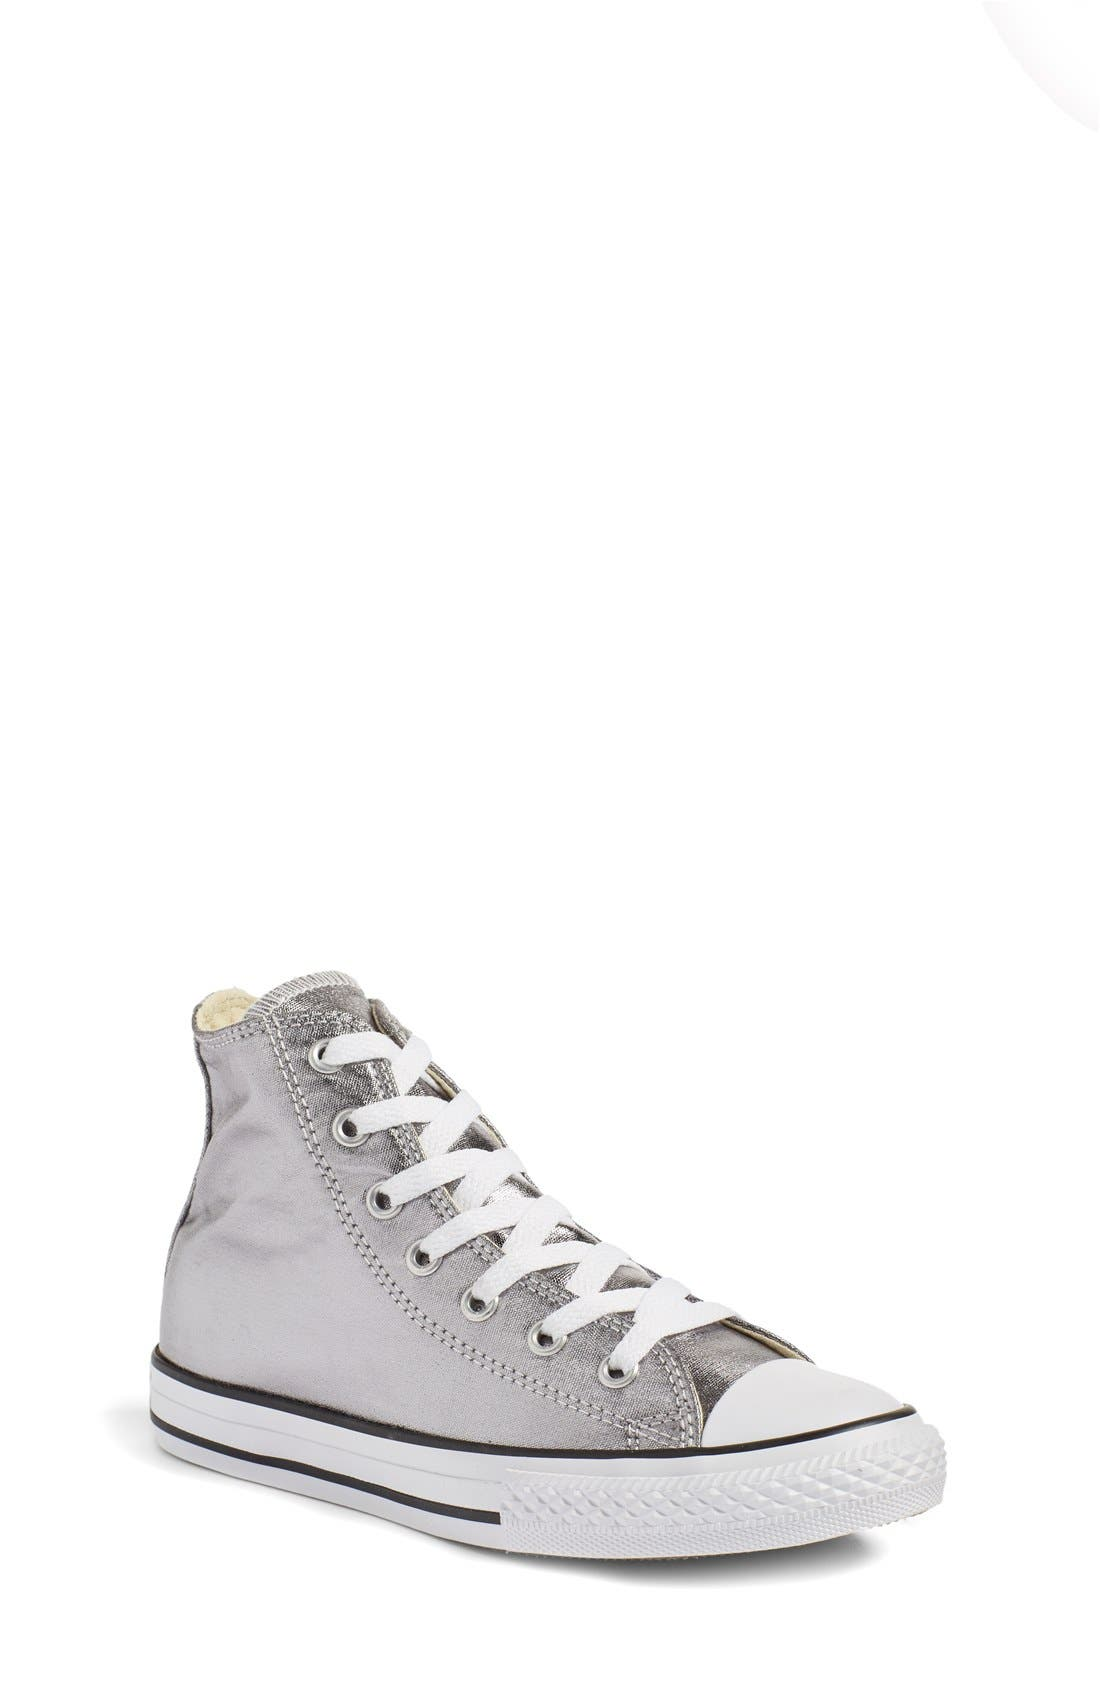 CONVERSE Chuck Taylor<sup>®</sup> All Star<sup>®</sup> Metallic High Top Sneaker